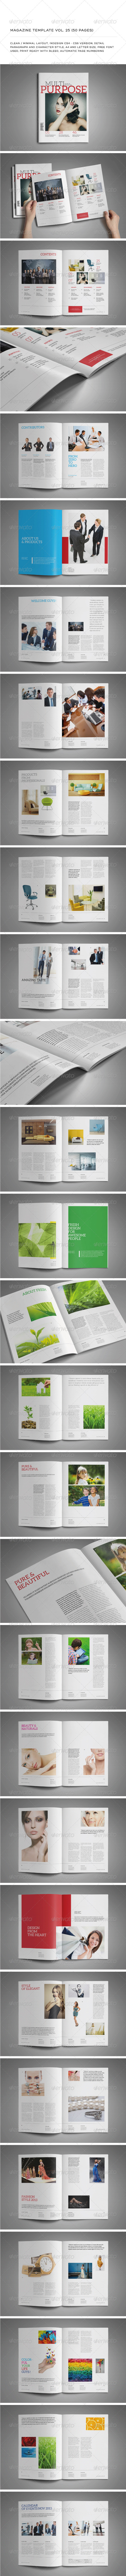 GraphicRiver A4 Letter 50 Pages Mgz Vol 25 6063739